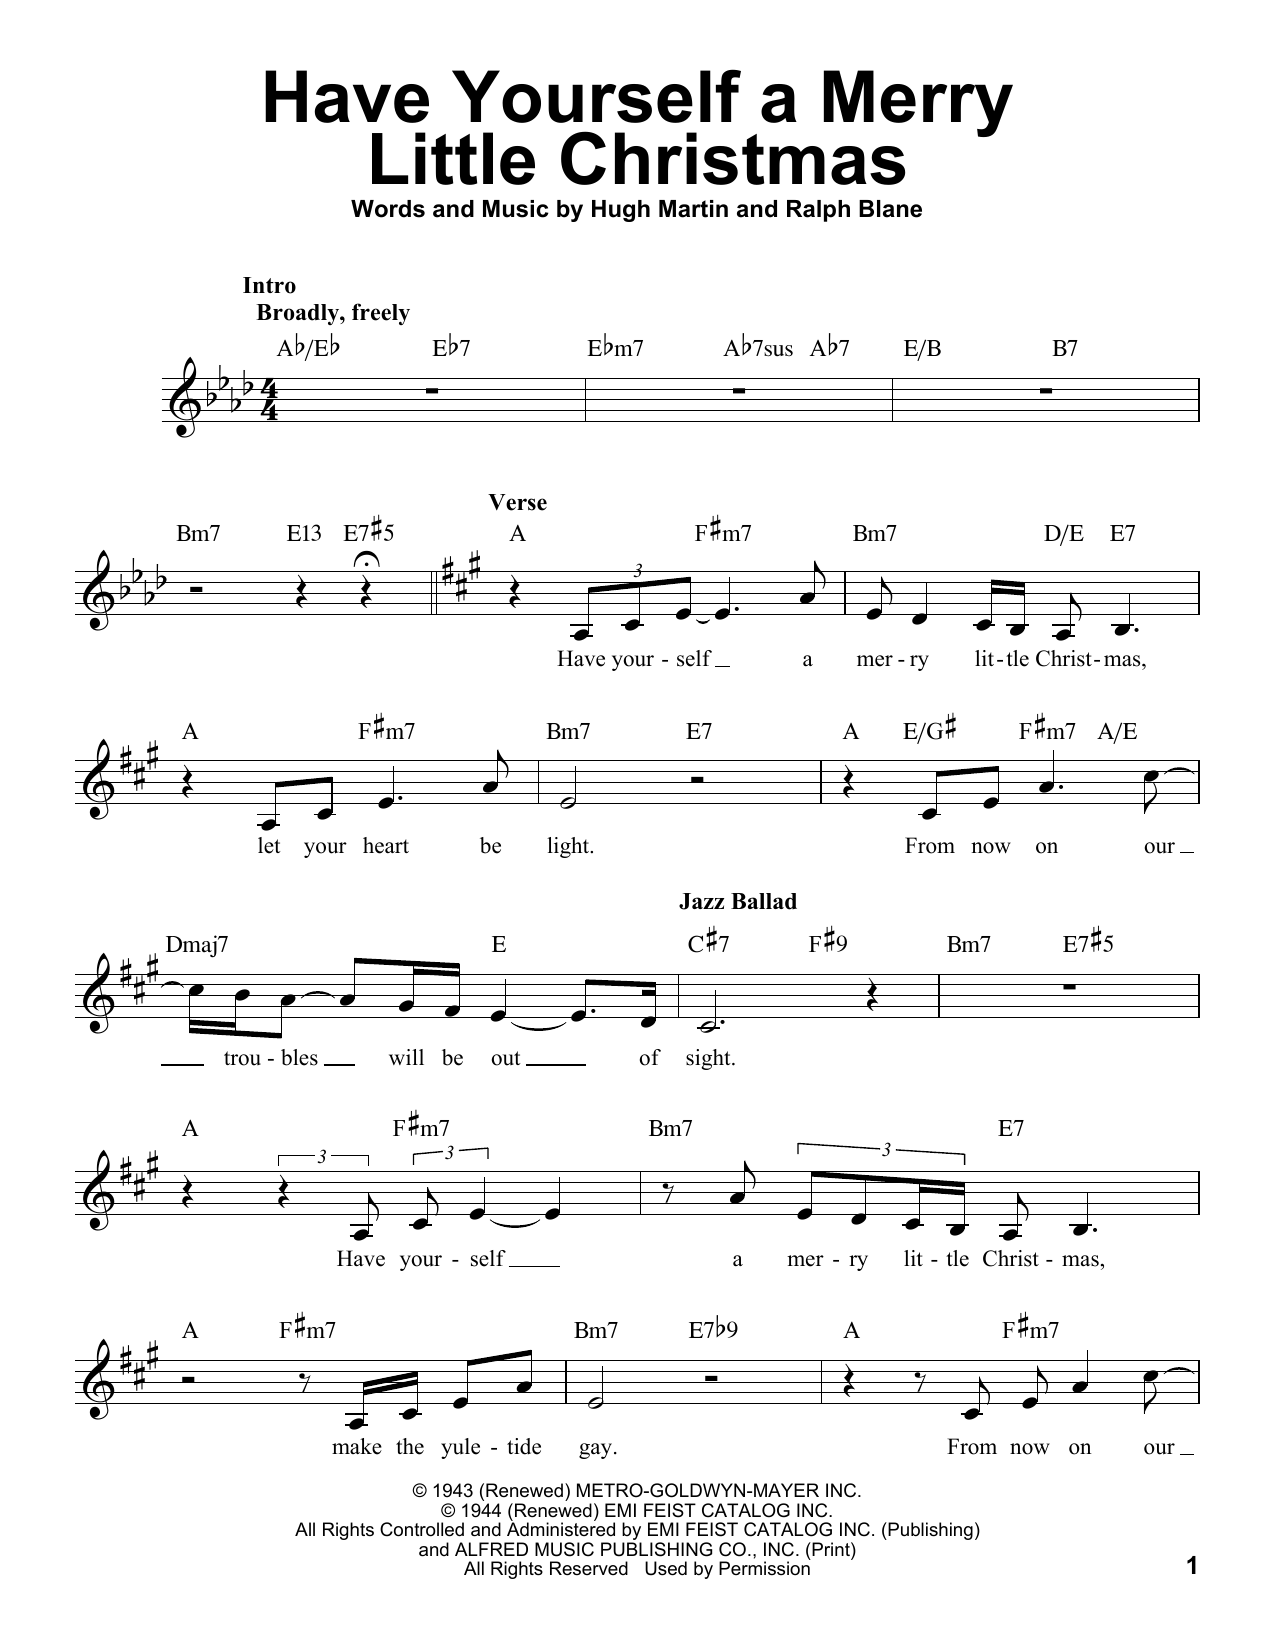 Have Yourself A Merry Little Christmas Lead Sheet.Sheet Music Digital Files To Print Licensed Hugh Martin